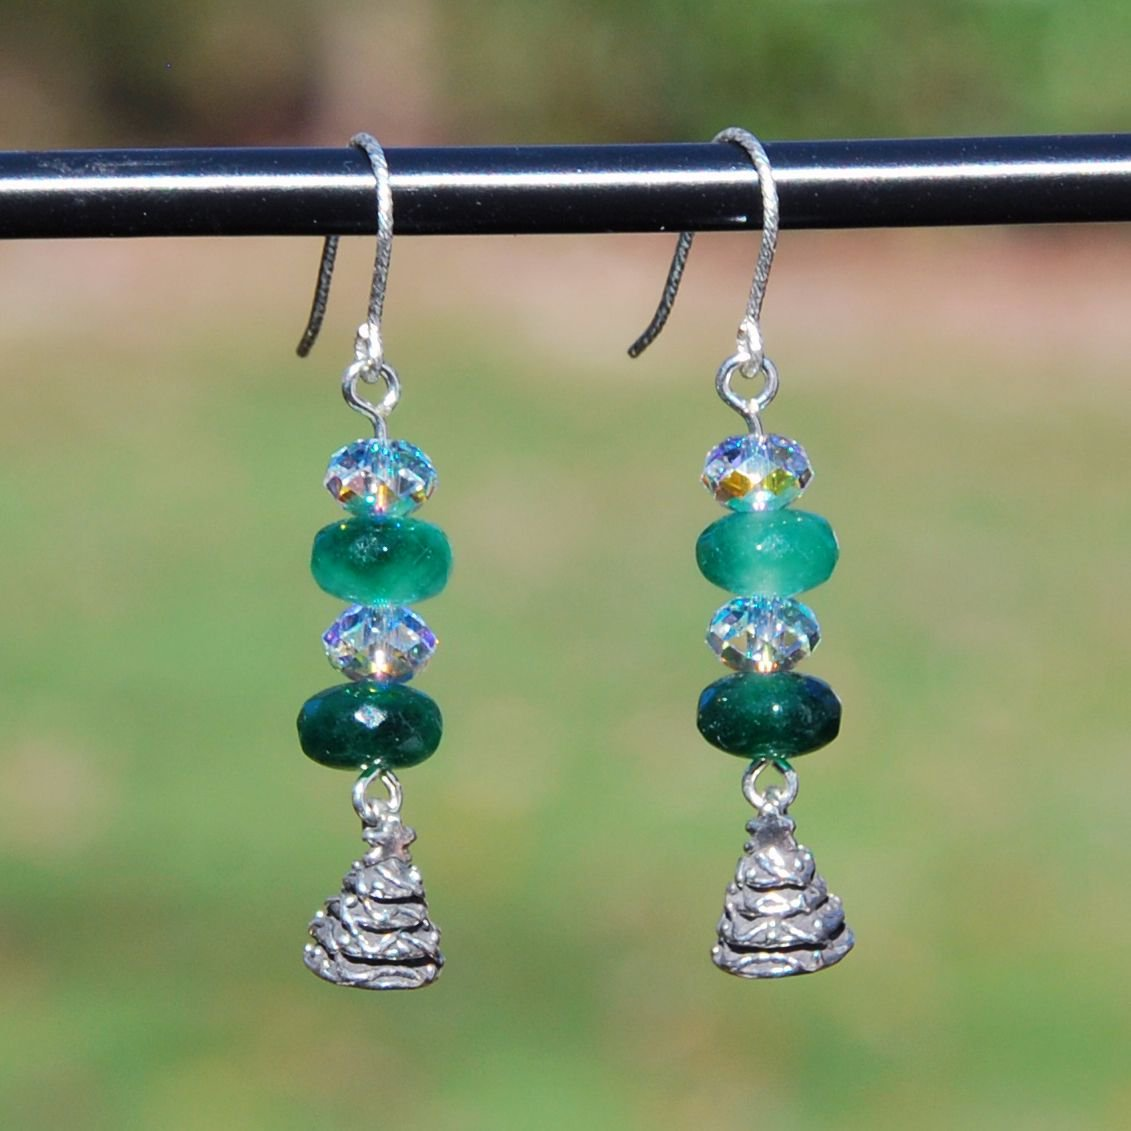 #freeshipping #etsyjewelry #etsyearrings #xmas #xmasearrings #etsymntt #etsysocial #emerald #christmastree earrings #swarovski  https:// buff.ly/2D0wHsj  &nbsp;  <br>http://pic.twitter.com/z3P2NaInYn